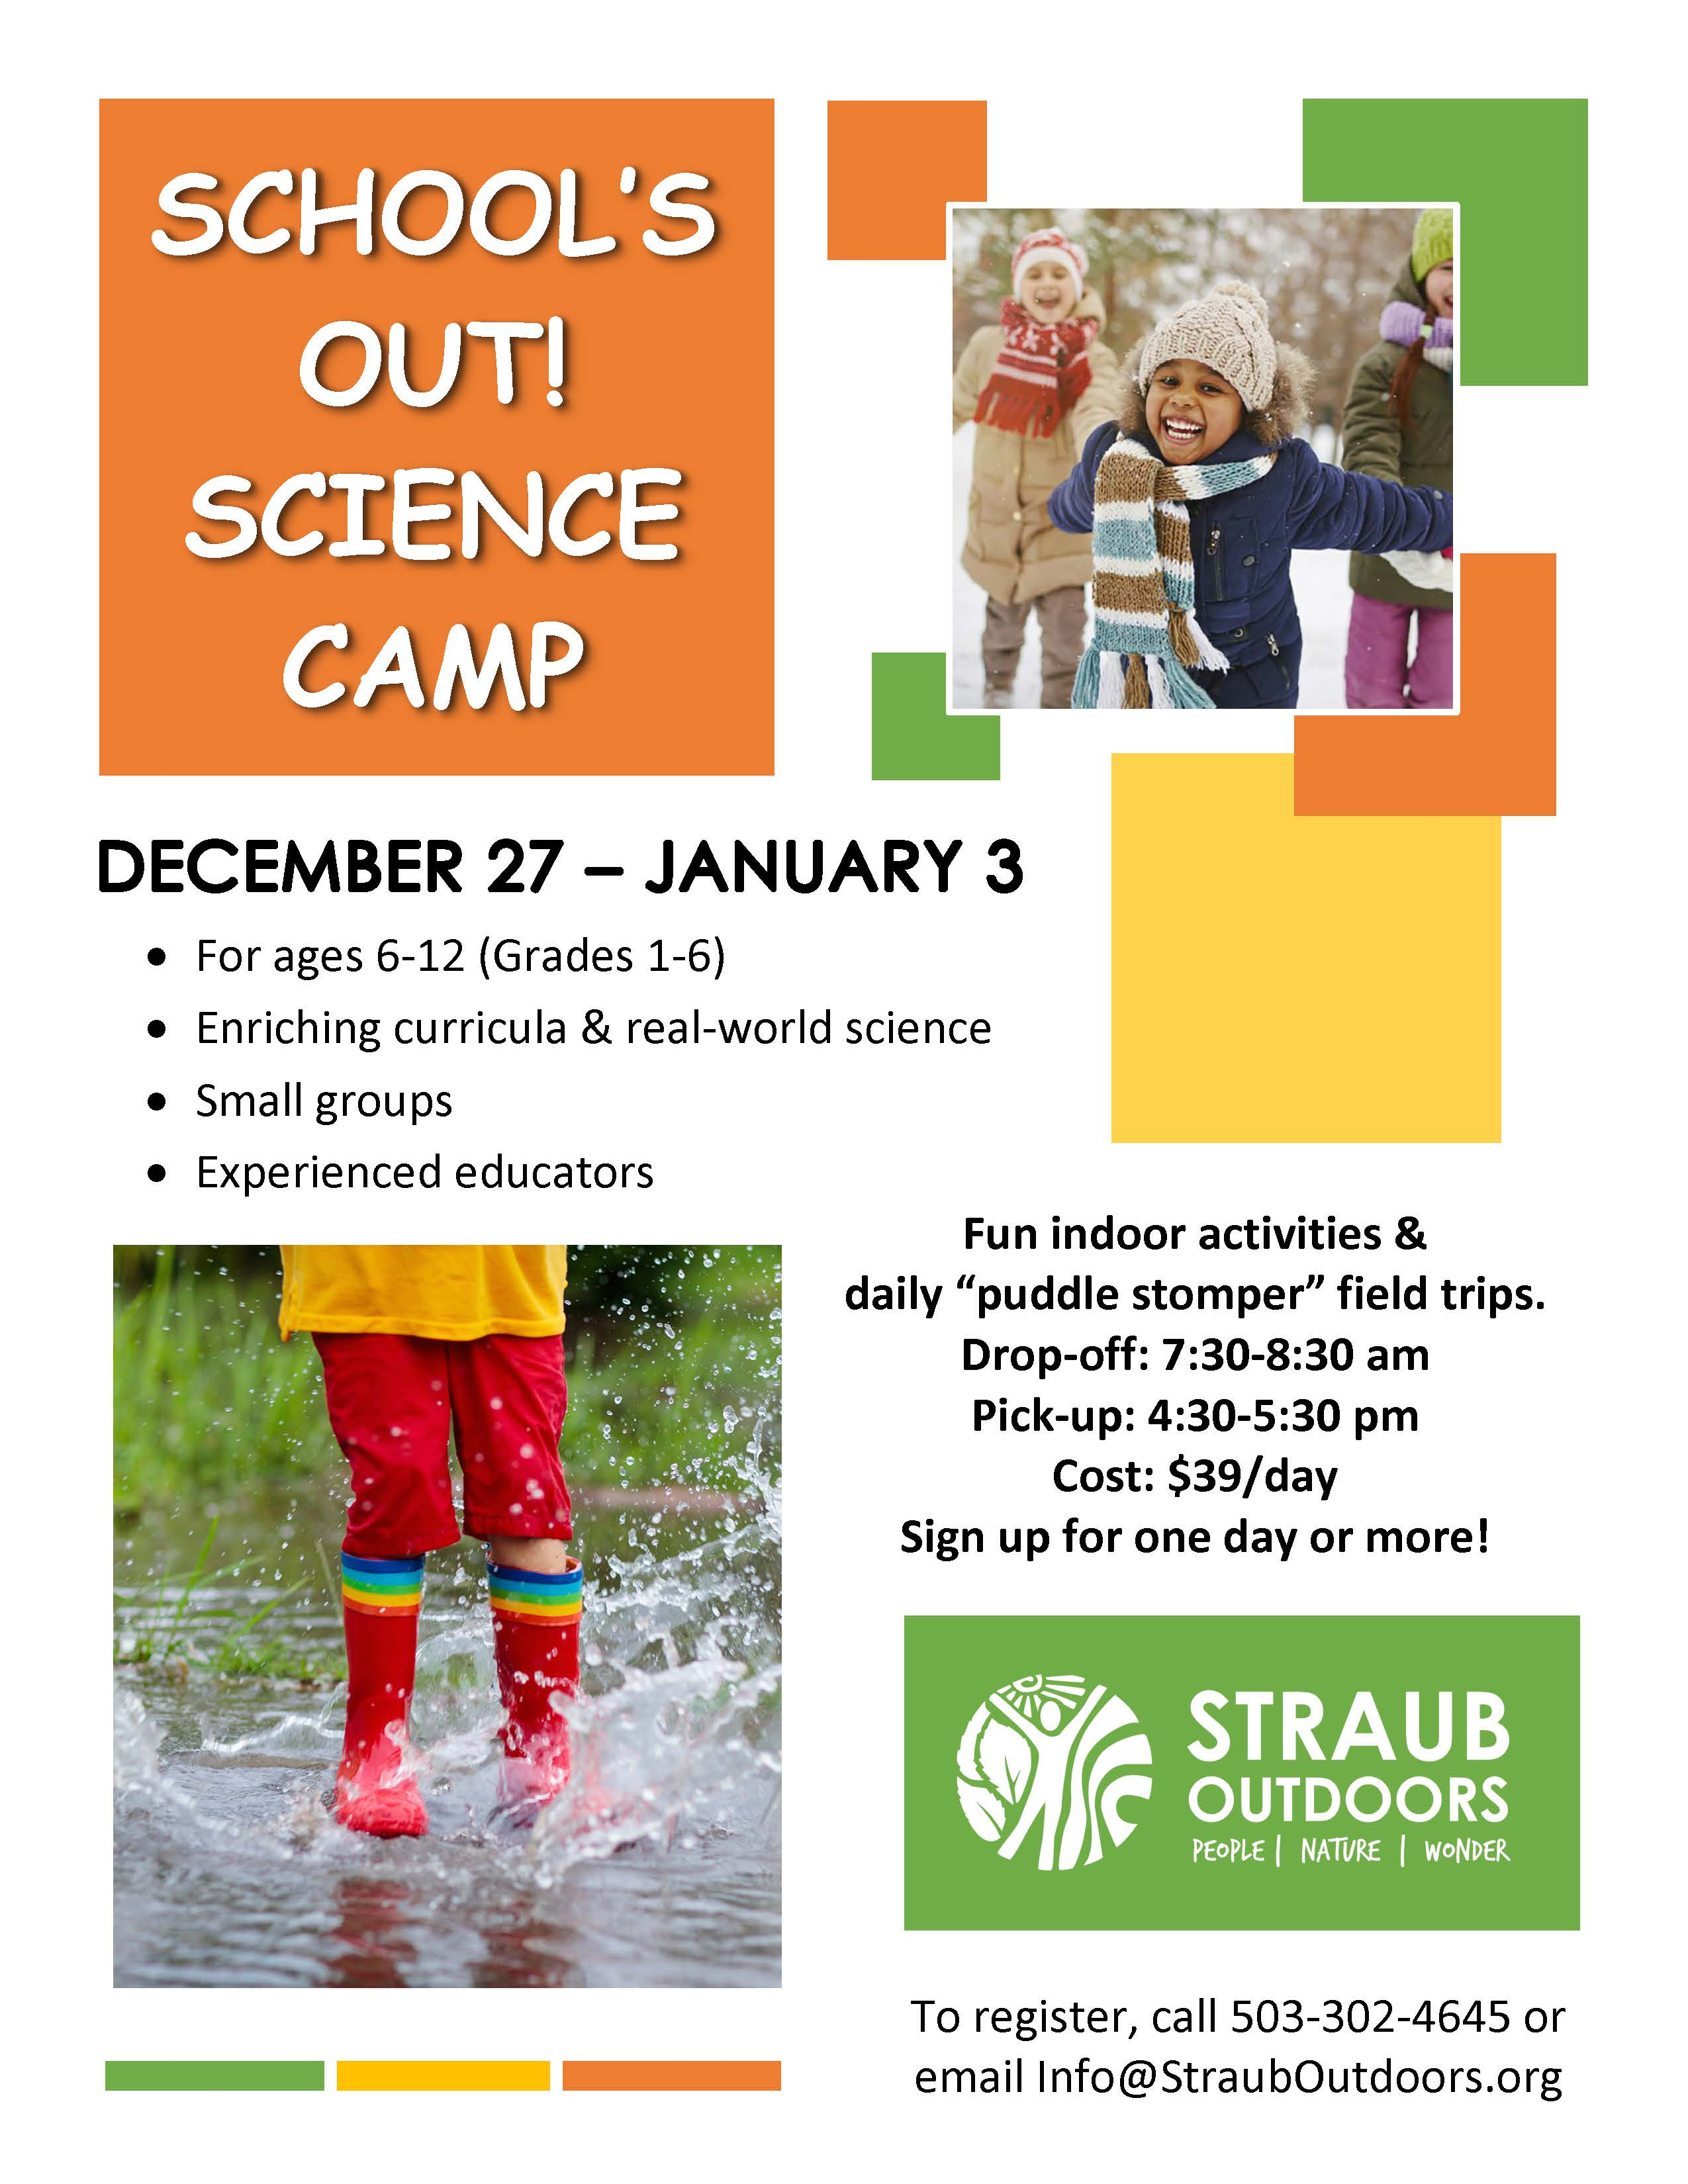 Please call the office for more information on Straub's Science Camp